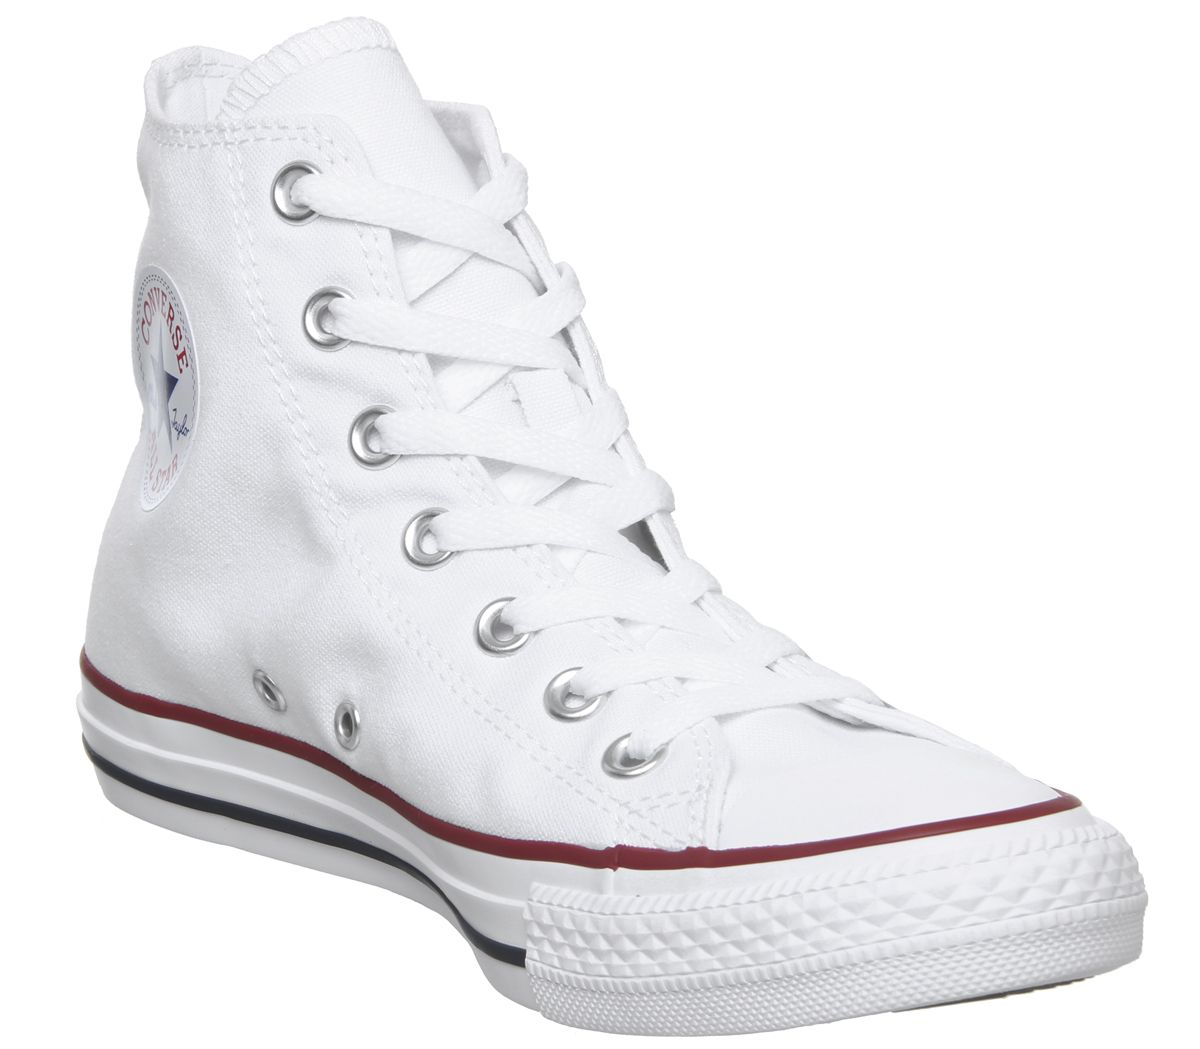 a9ec7417ed Converse All Star hi optical white canvas